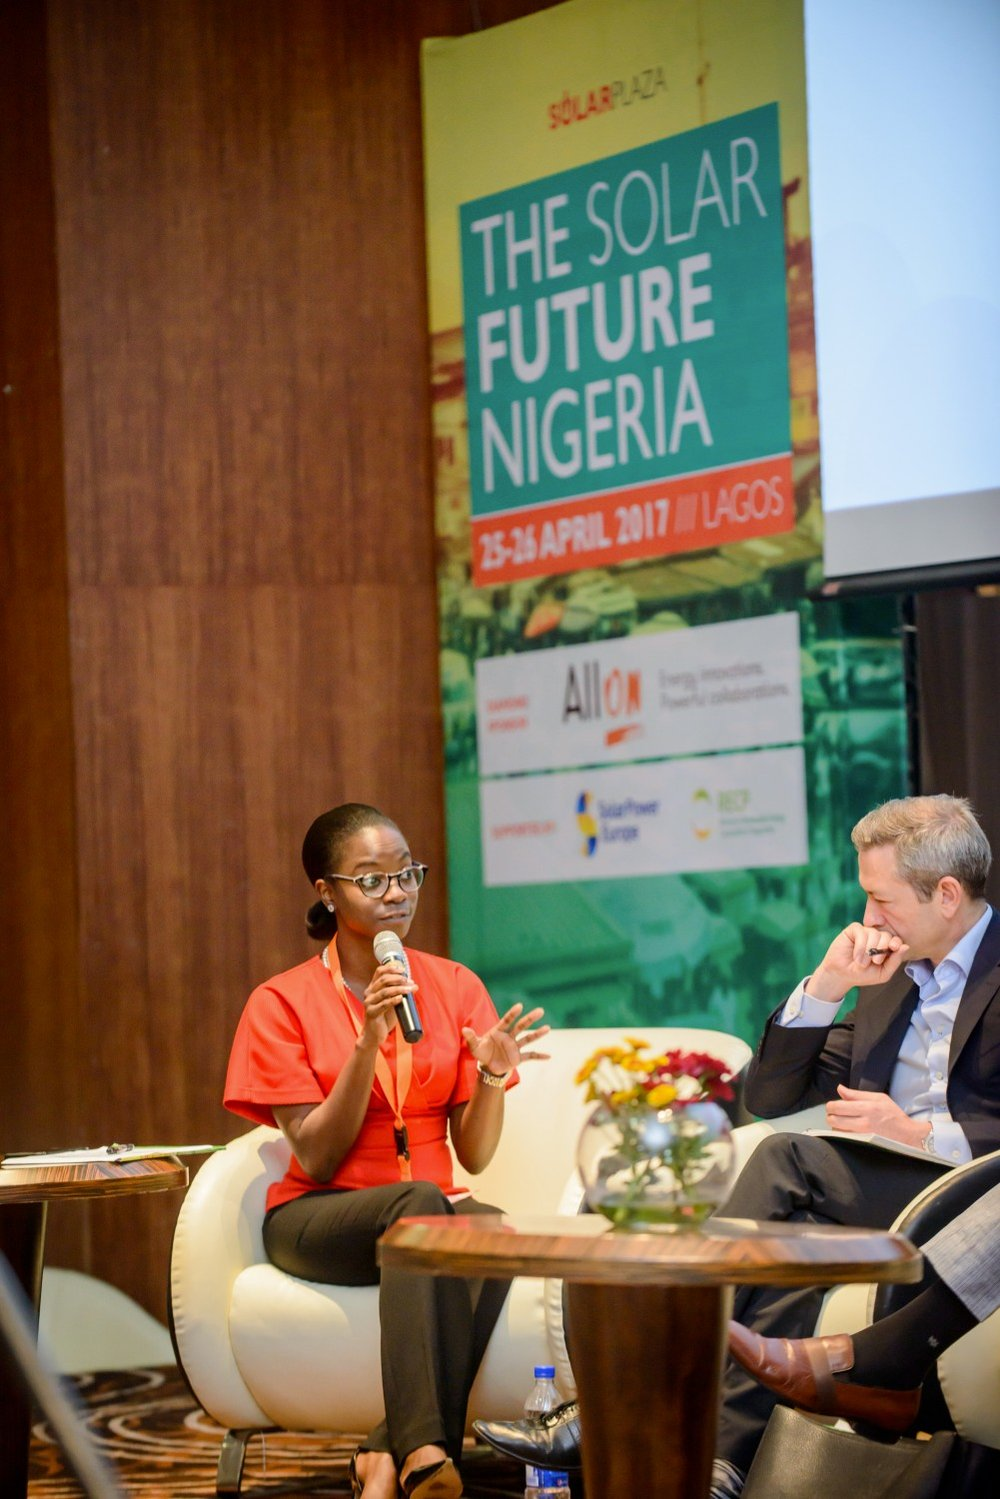 Solar_Future_Nigeria_event_by_David_Asumah_Studios-4564.jpg